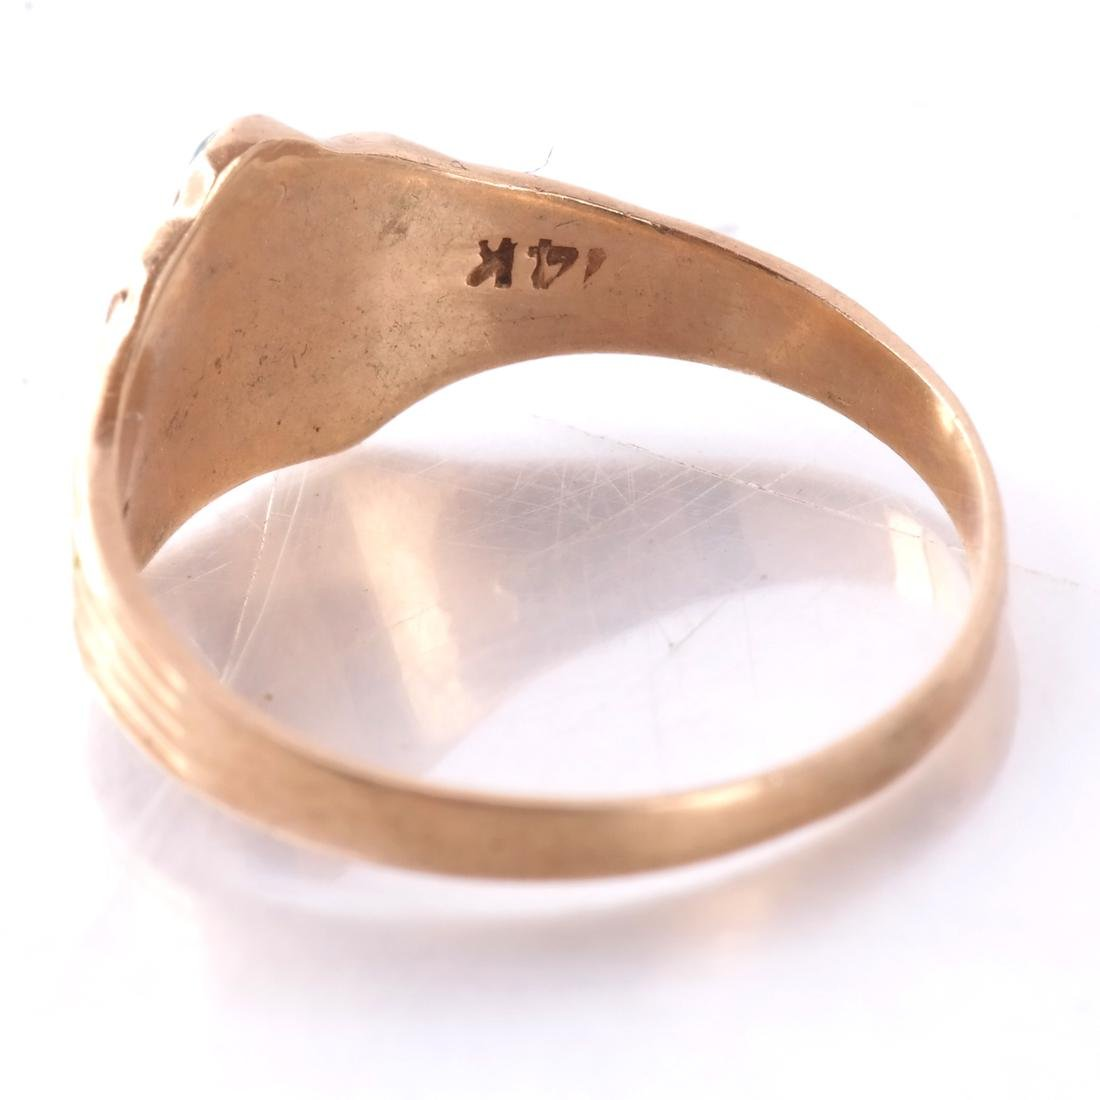 14k Baby's Rings in White and Yellow Gold - 5